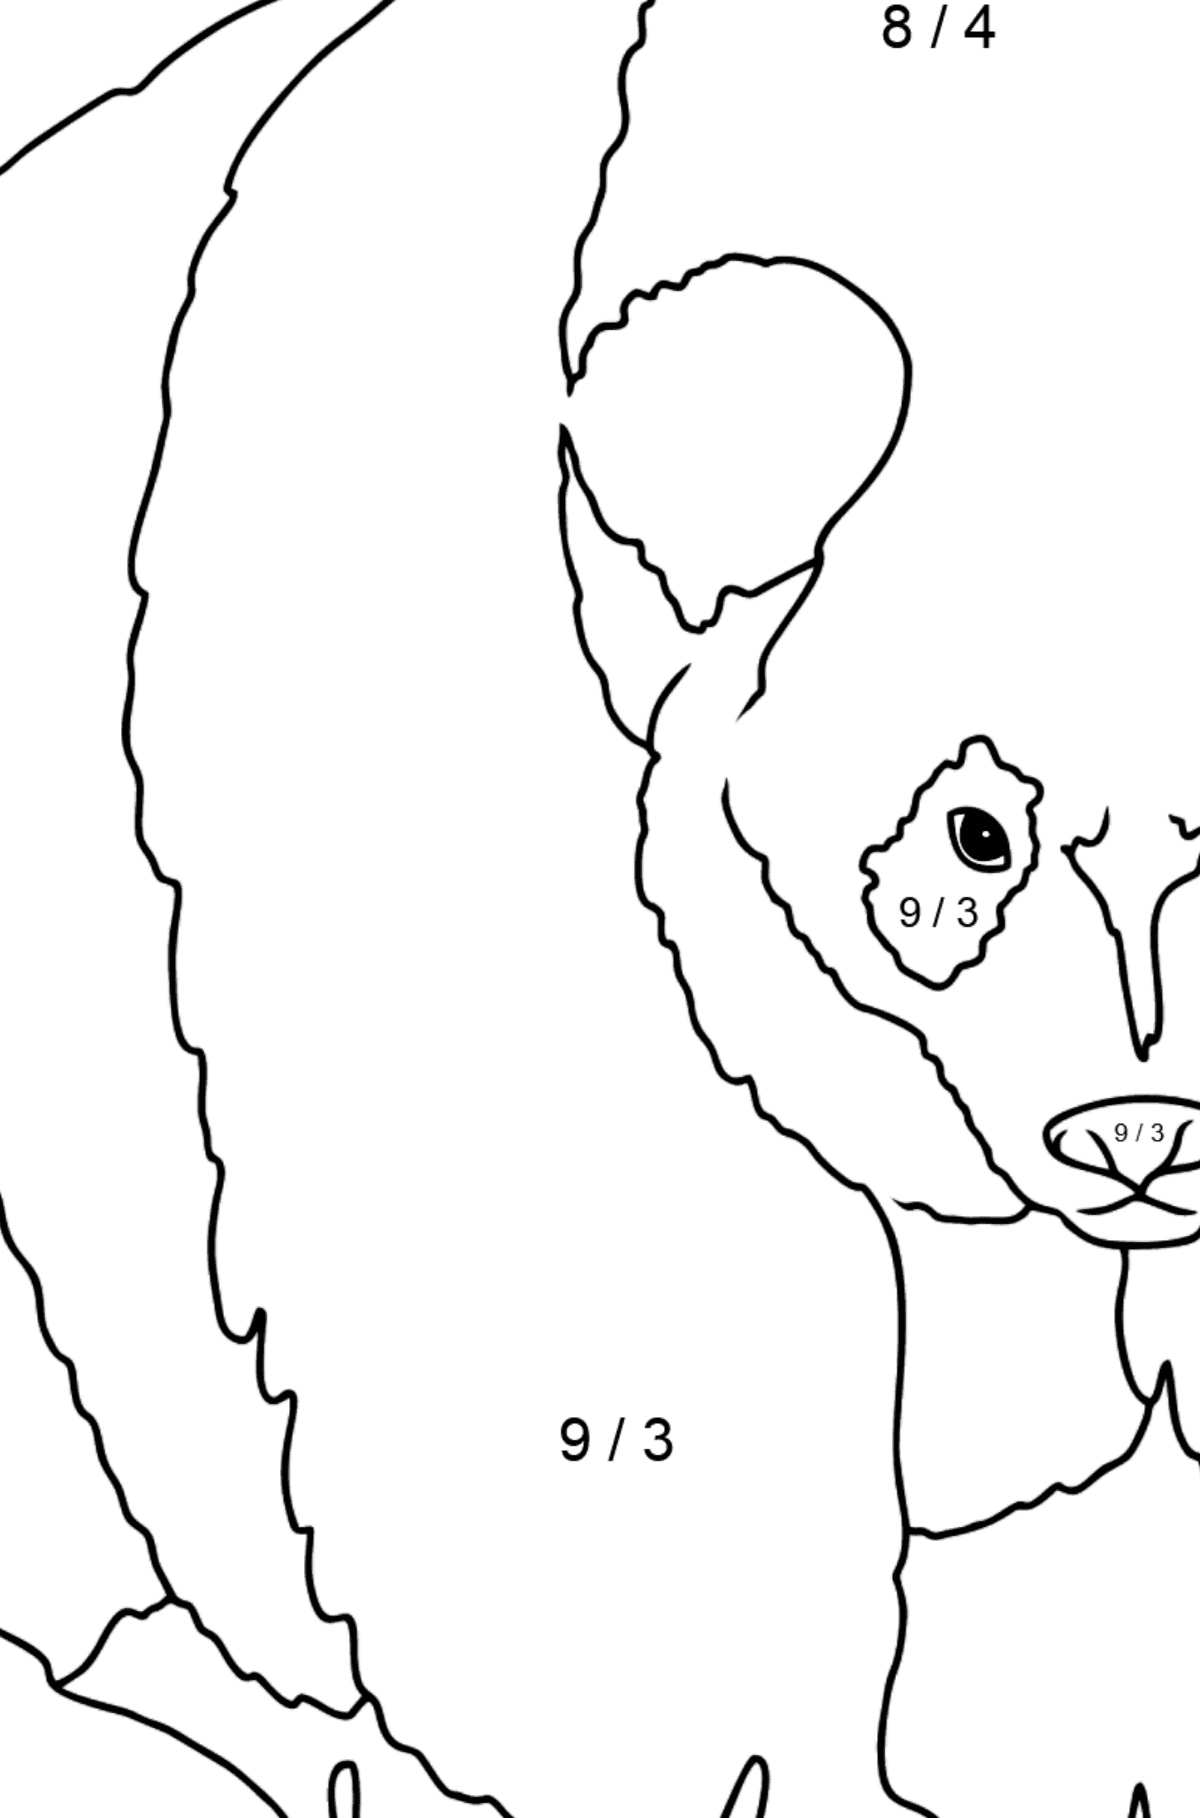 Coloring Page - A Panda is Standing - Math Coloring - Division for Kids